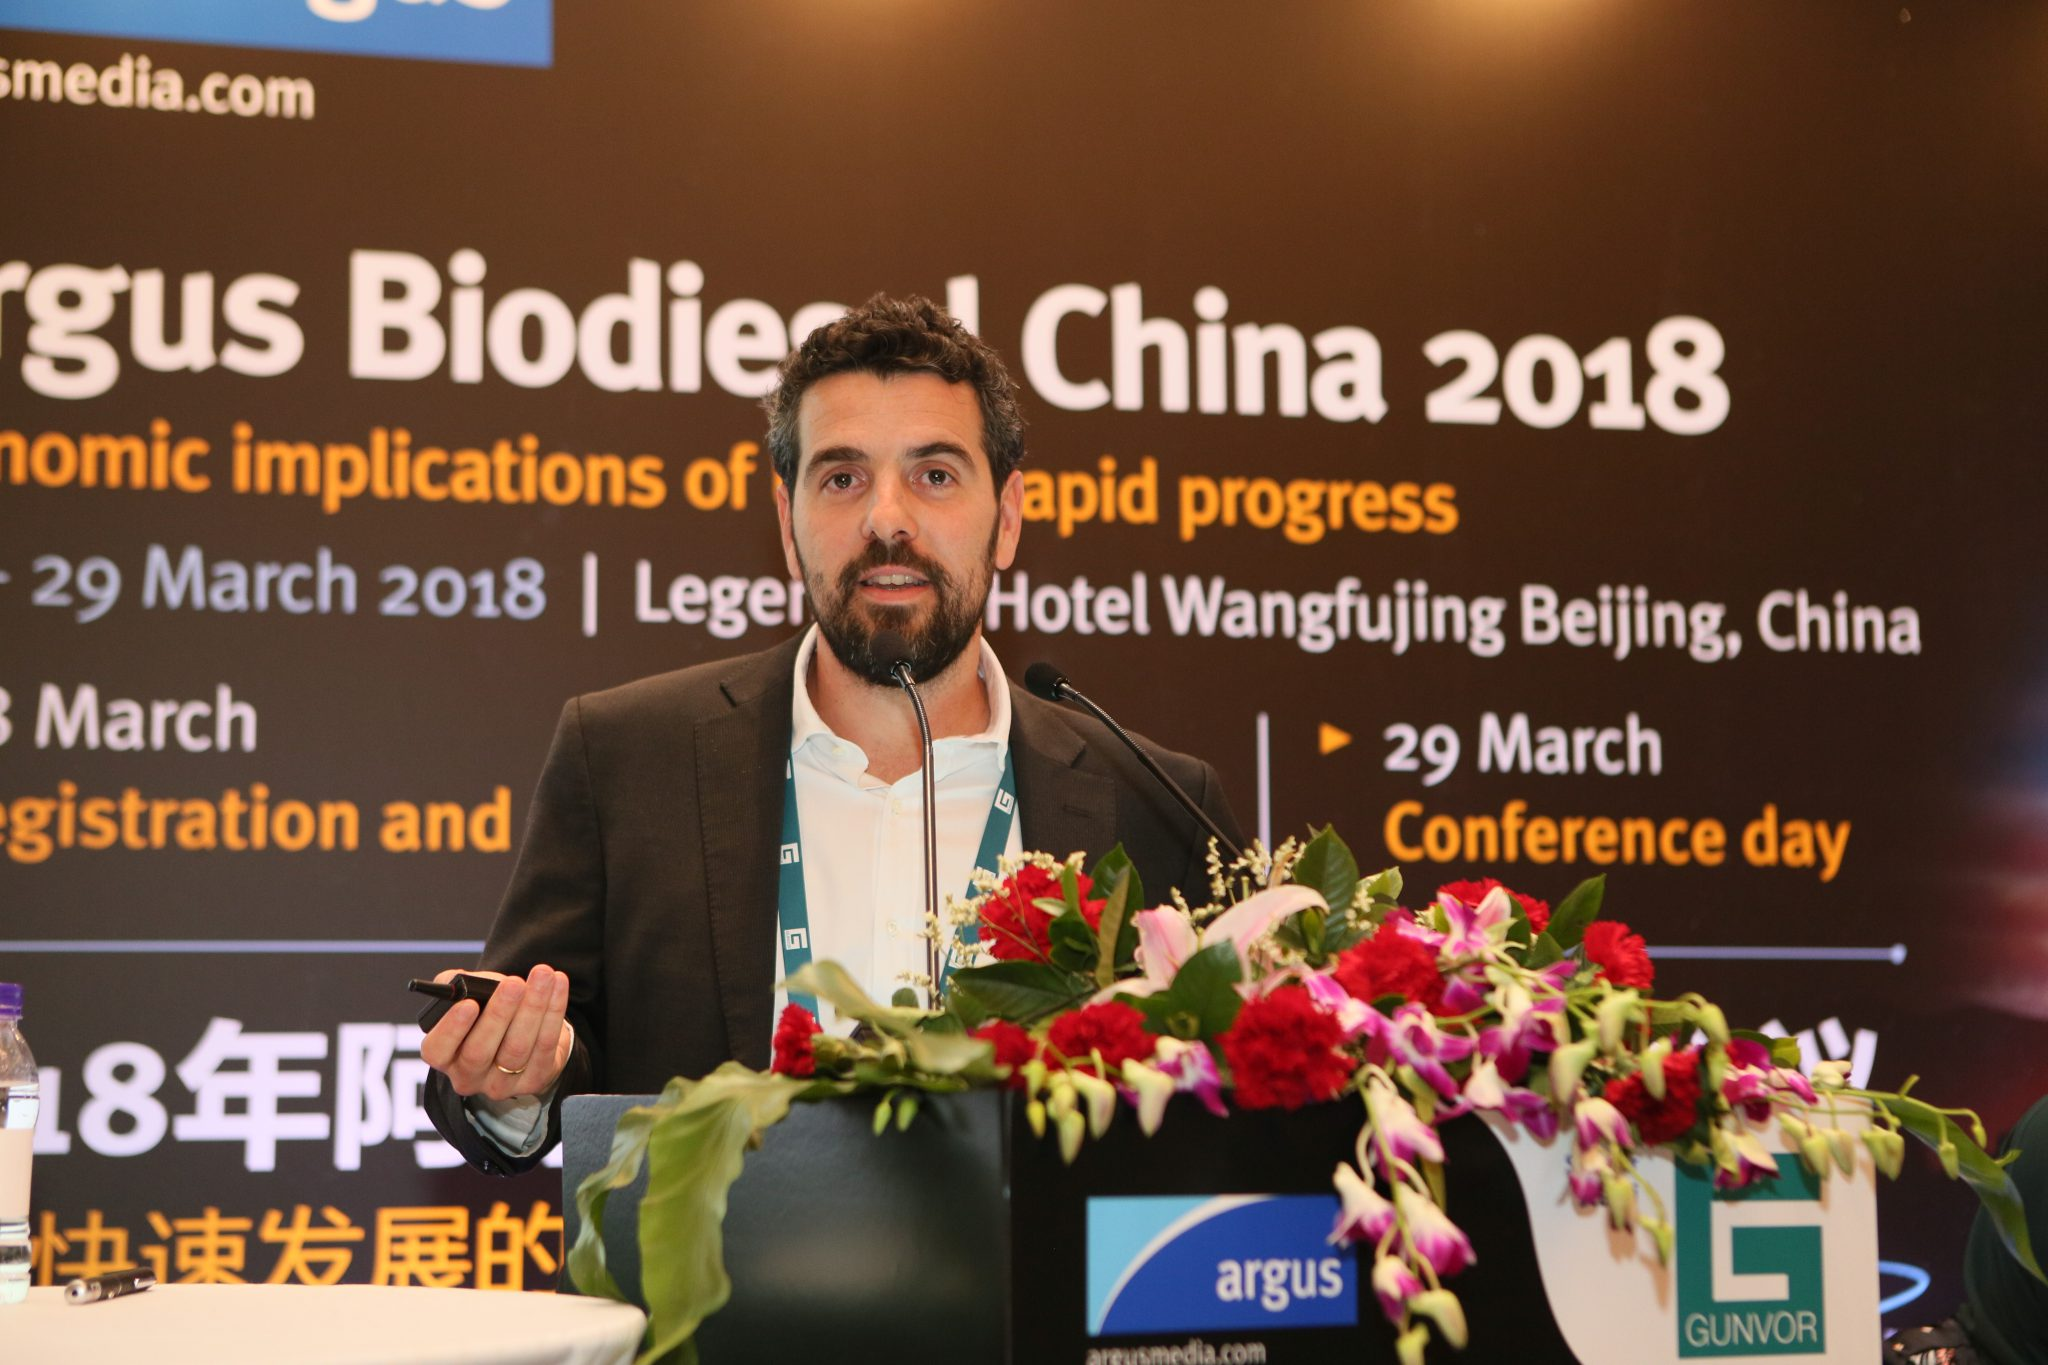 Uco Trading, present at the Beijing Argus 2018 Congress